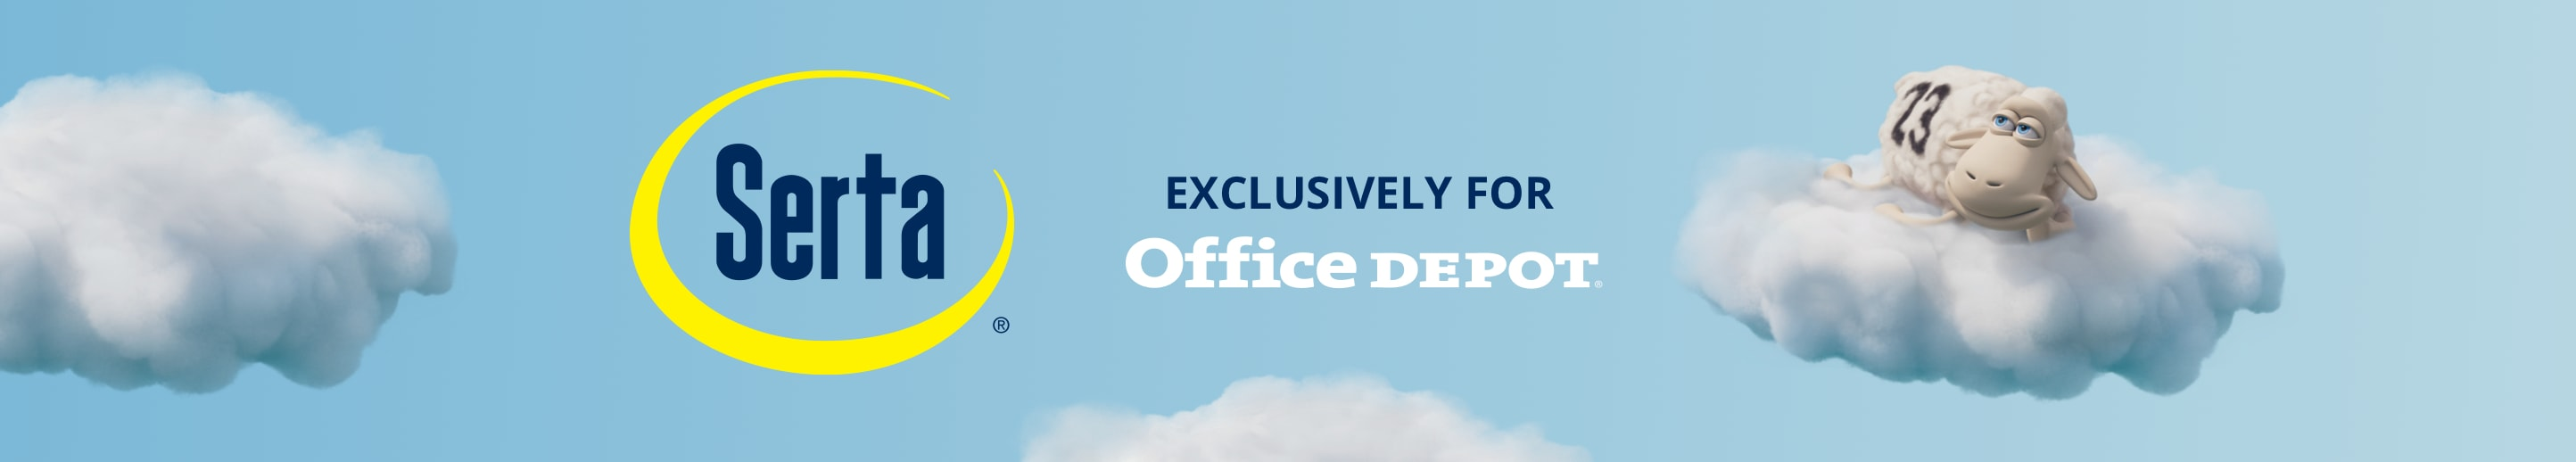 Serta - Exclusively for Office Depot